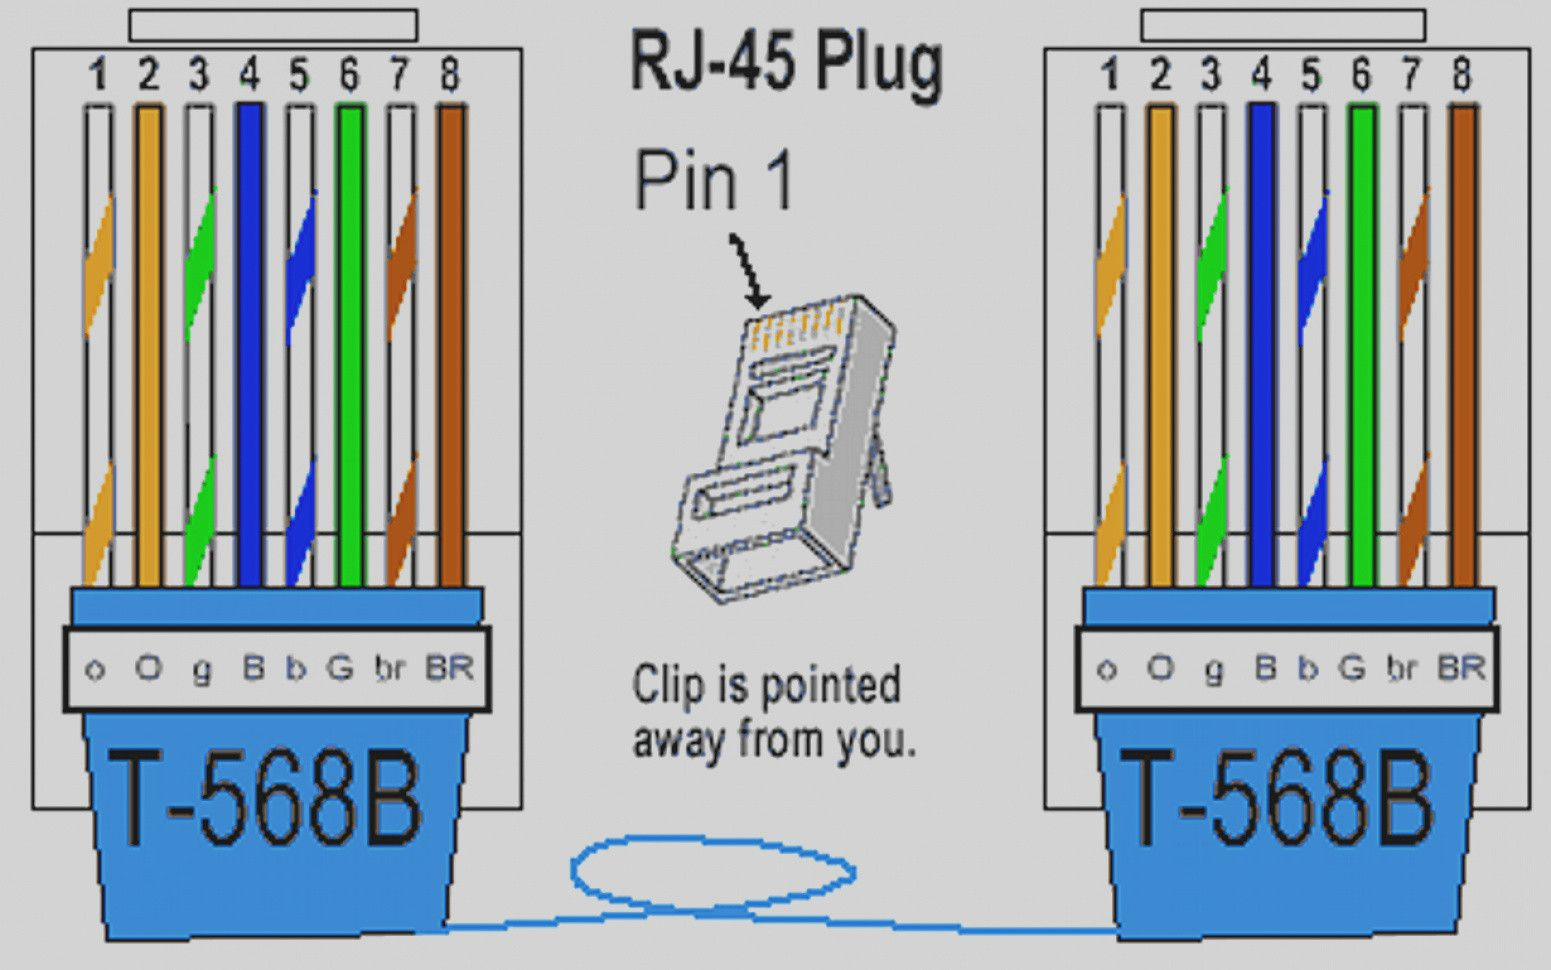 Network Cable Wiring Diagram in 2020 (With images